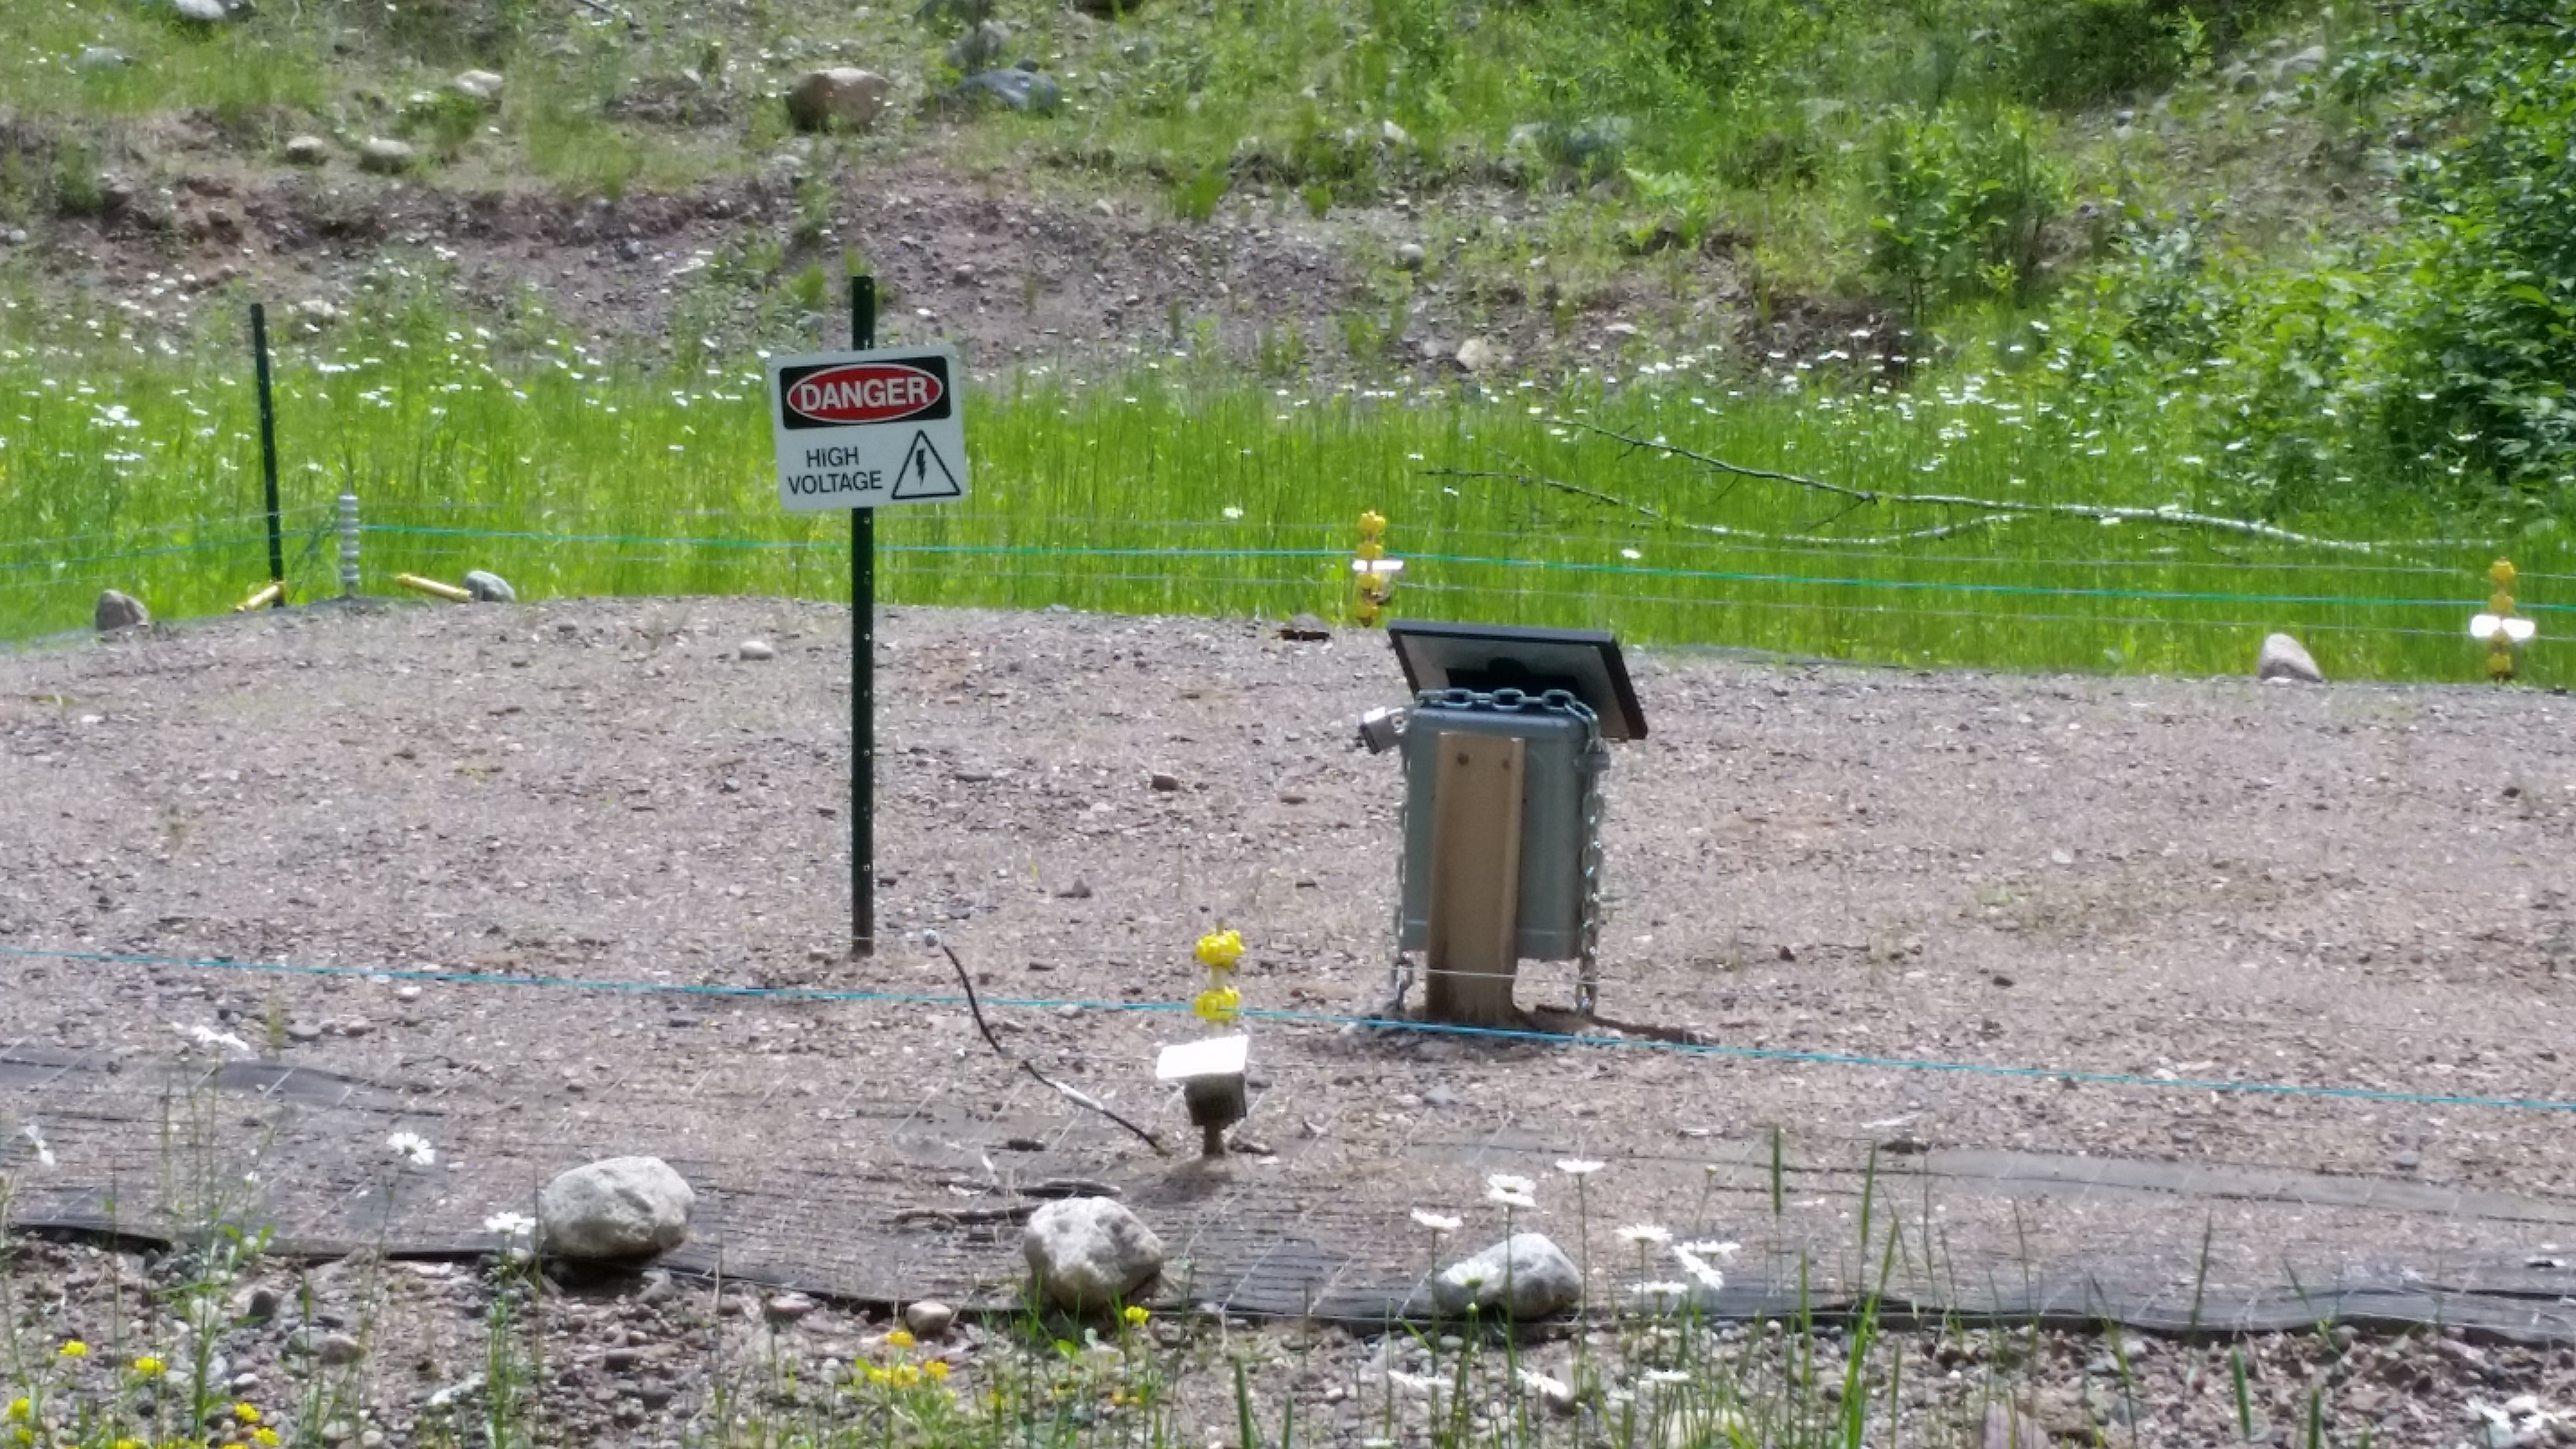 A picture showing a Danger, High Voltage sign, protecting area meant to accommodate adult turtles or further protect hatchlings.